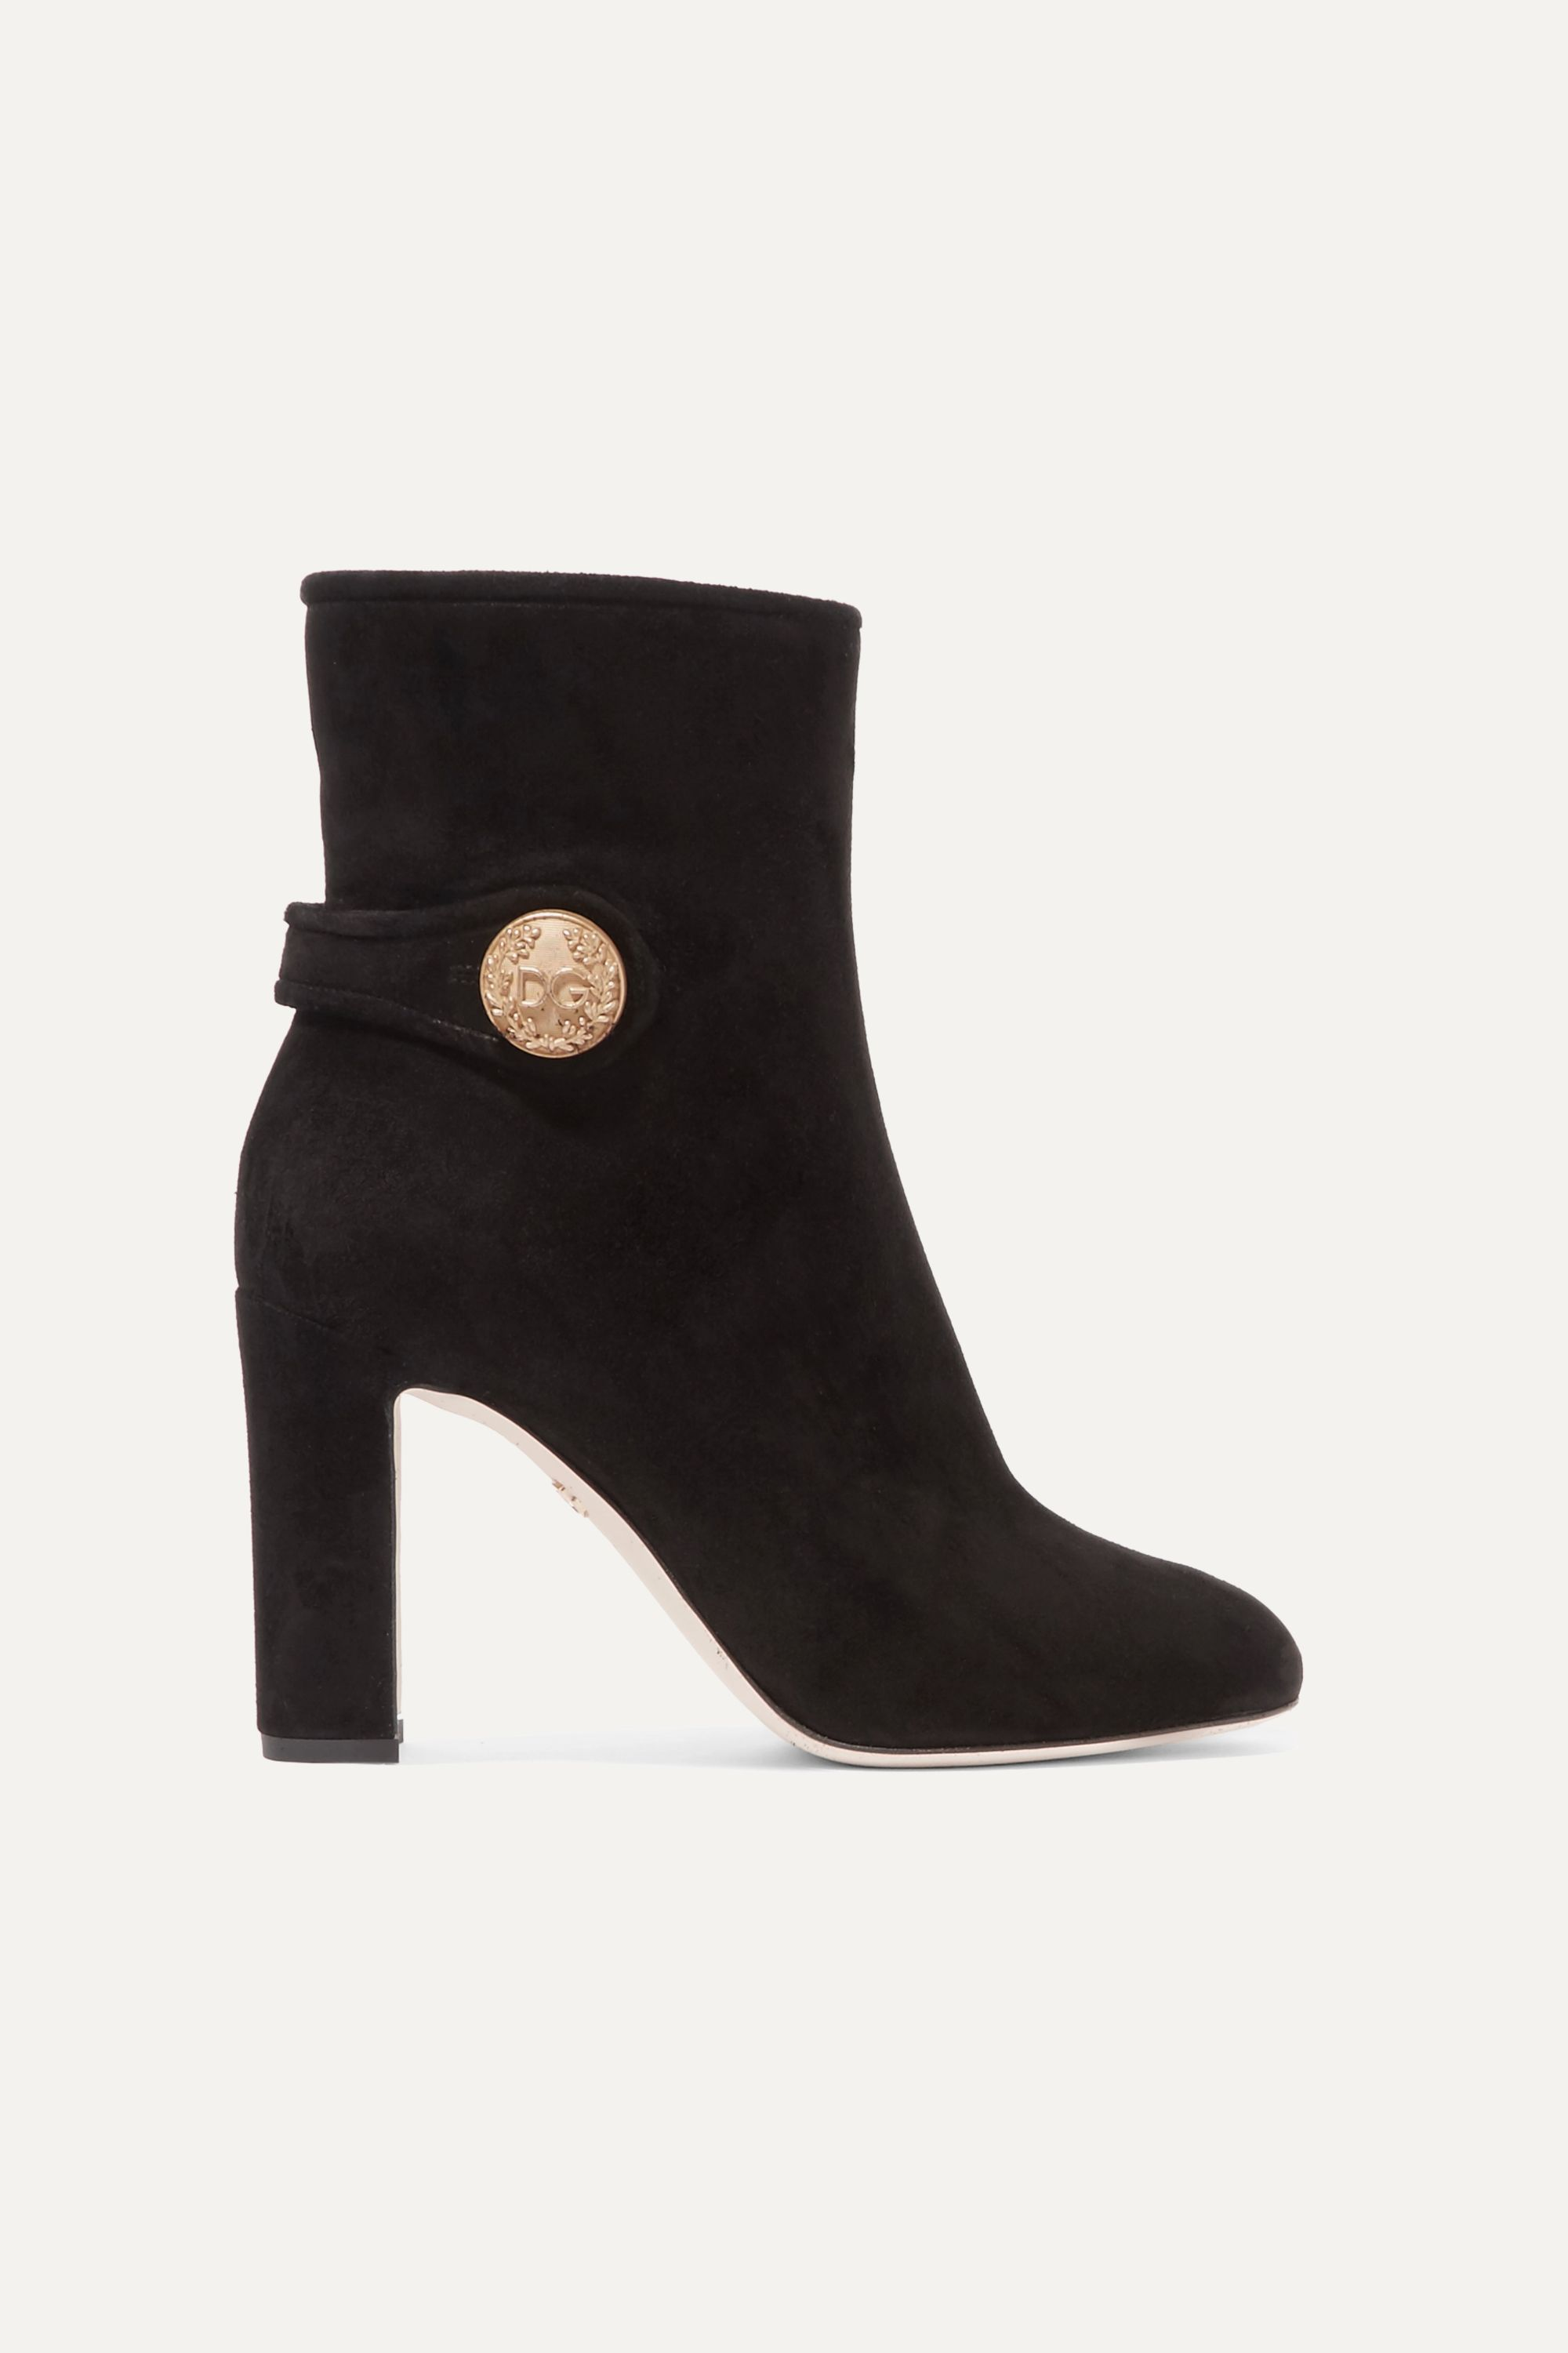 Black Suede Heeled Boots, Gold Button